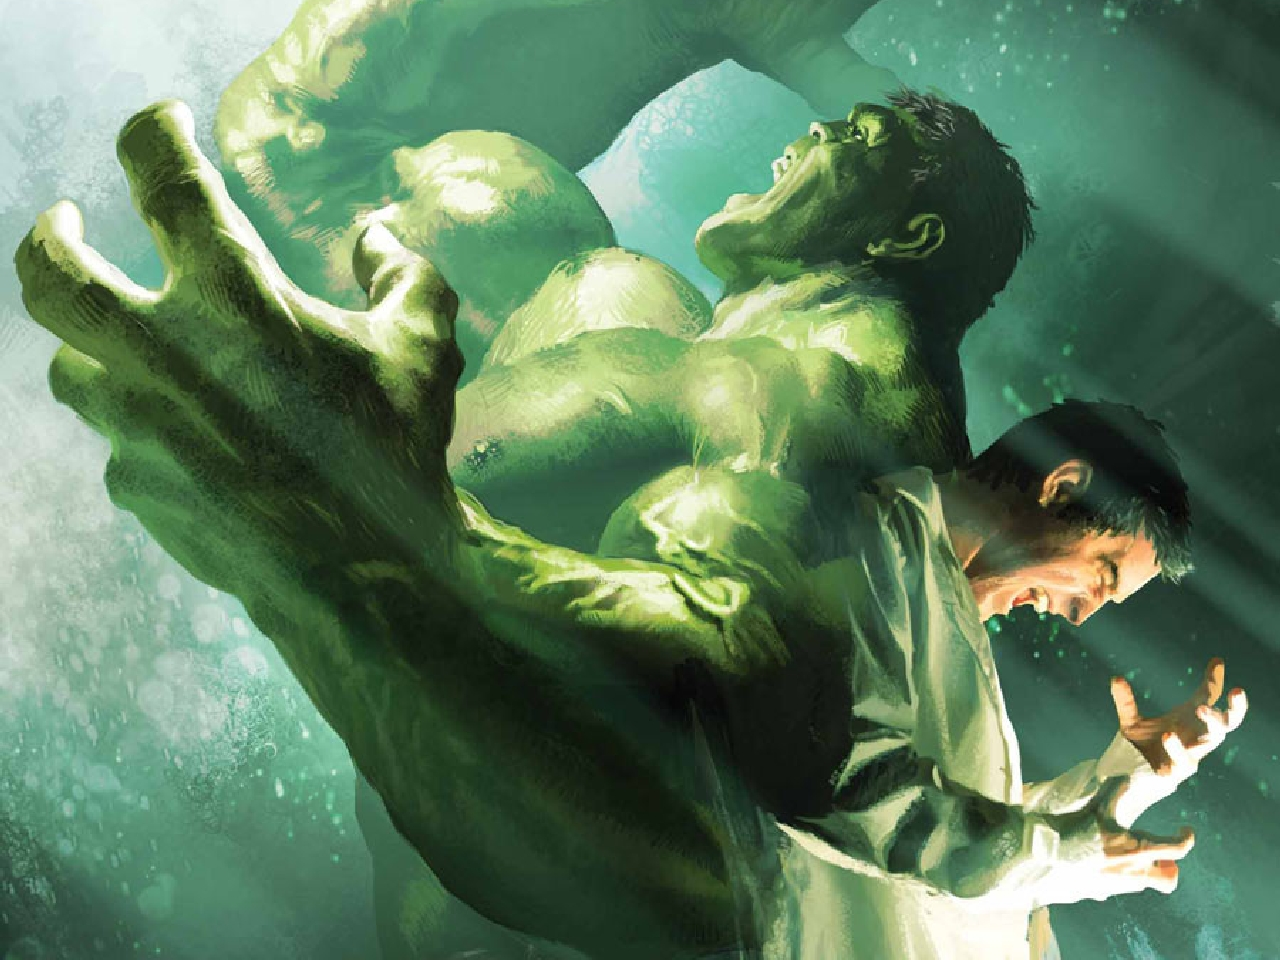 Hulk Wallpaper Hd Images And Background For Pc cute Wallpapers 1280x960